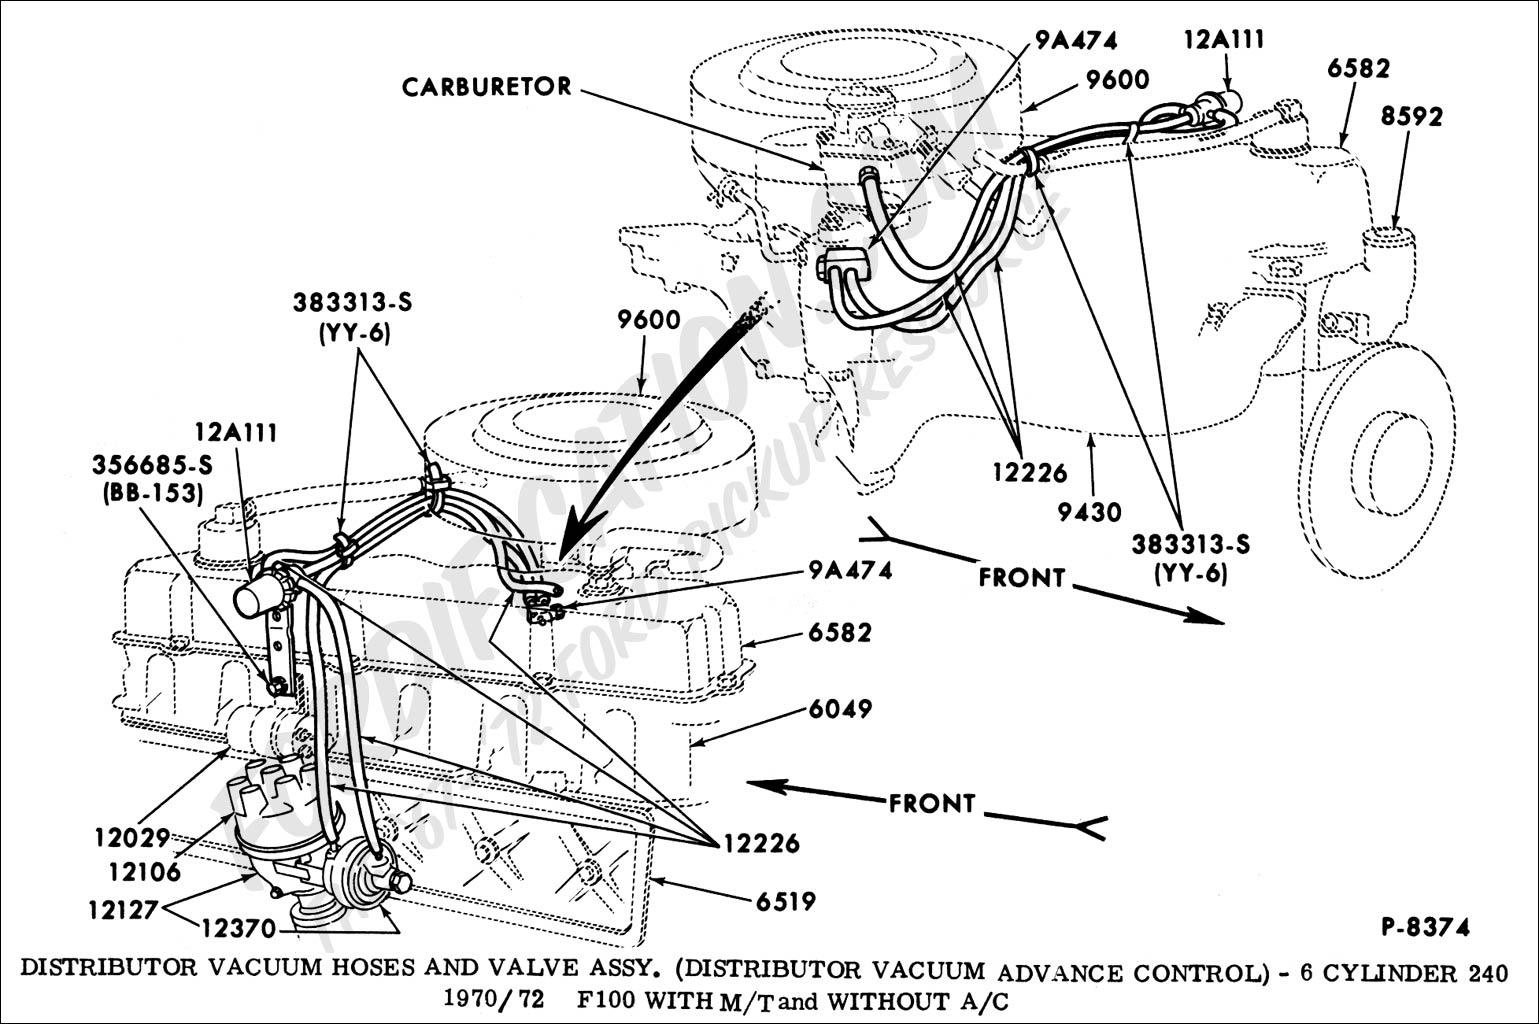 Pontiac 400 Distributor Wire Diagram Not Lossing Wiring 1969 Firebird Engine Schematic Ford Truck Technical Drawings And Schematics Section I Hei For